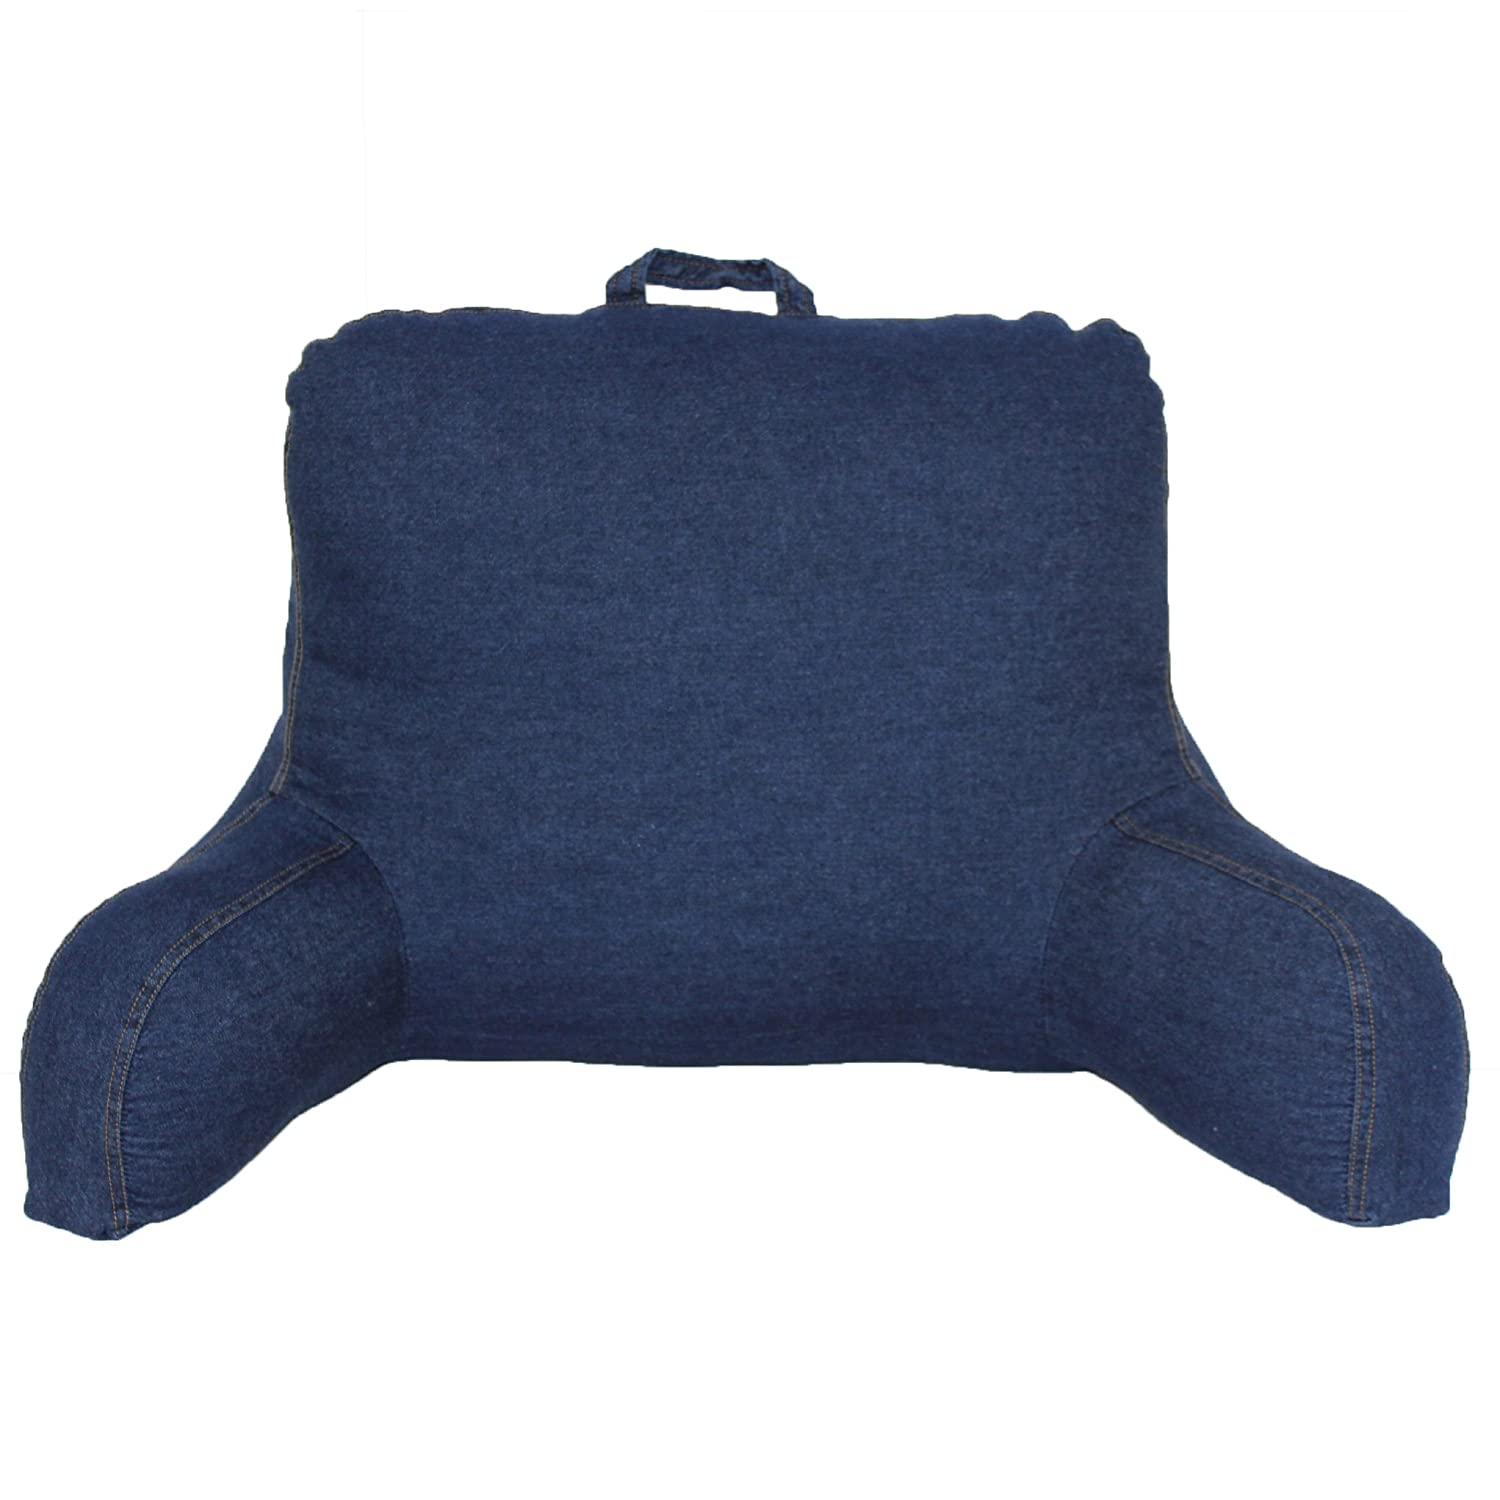 Bed chair pillow walmart - Brentwood 666 Washed Denim Backrest Pillow Blue